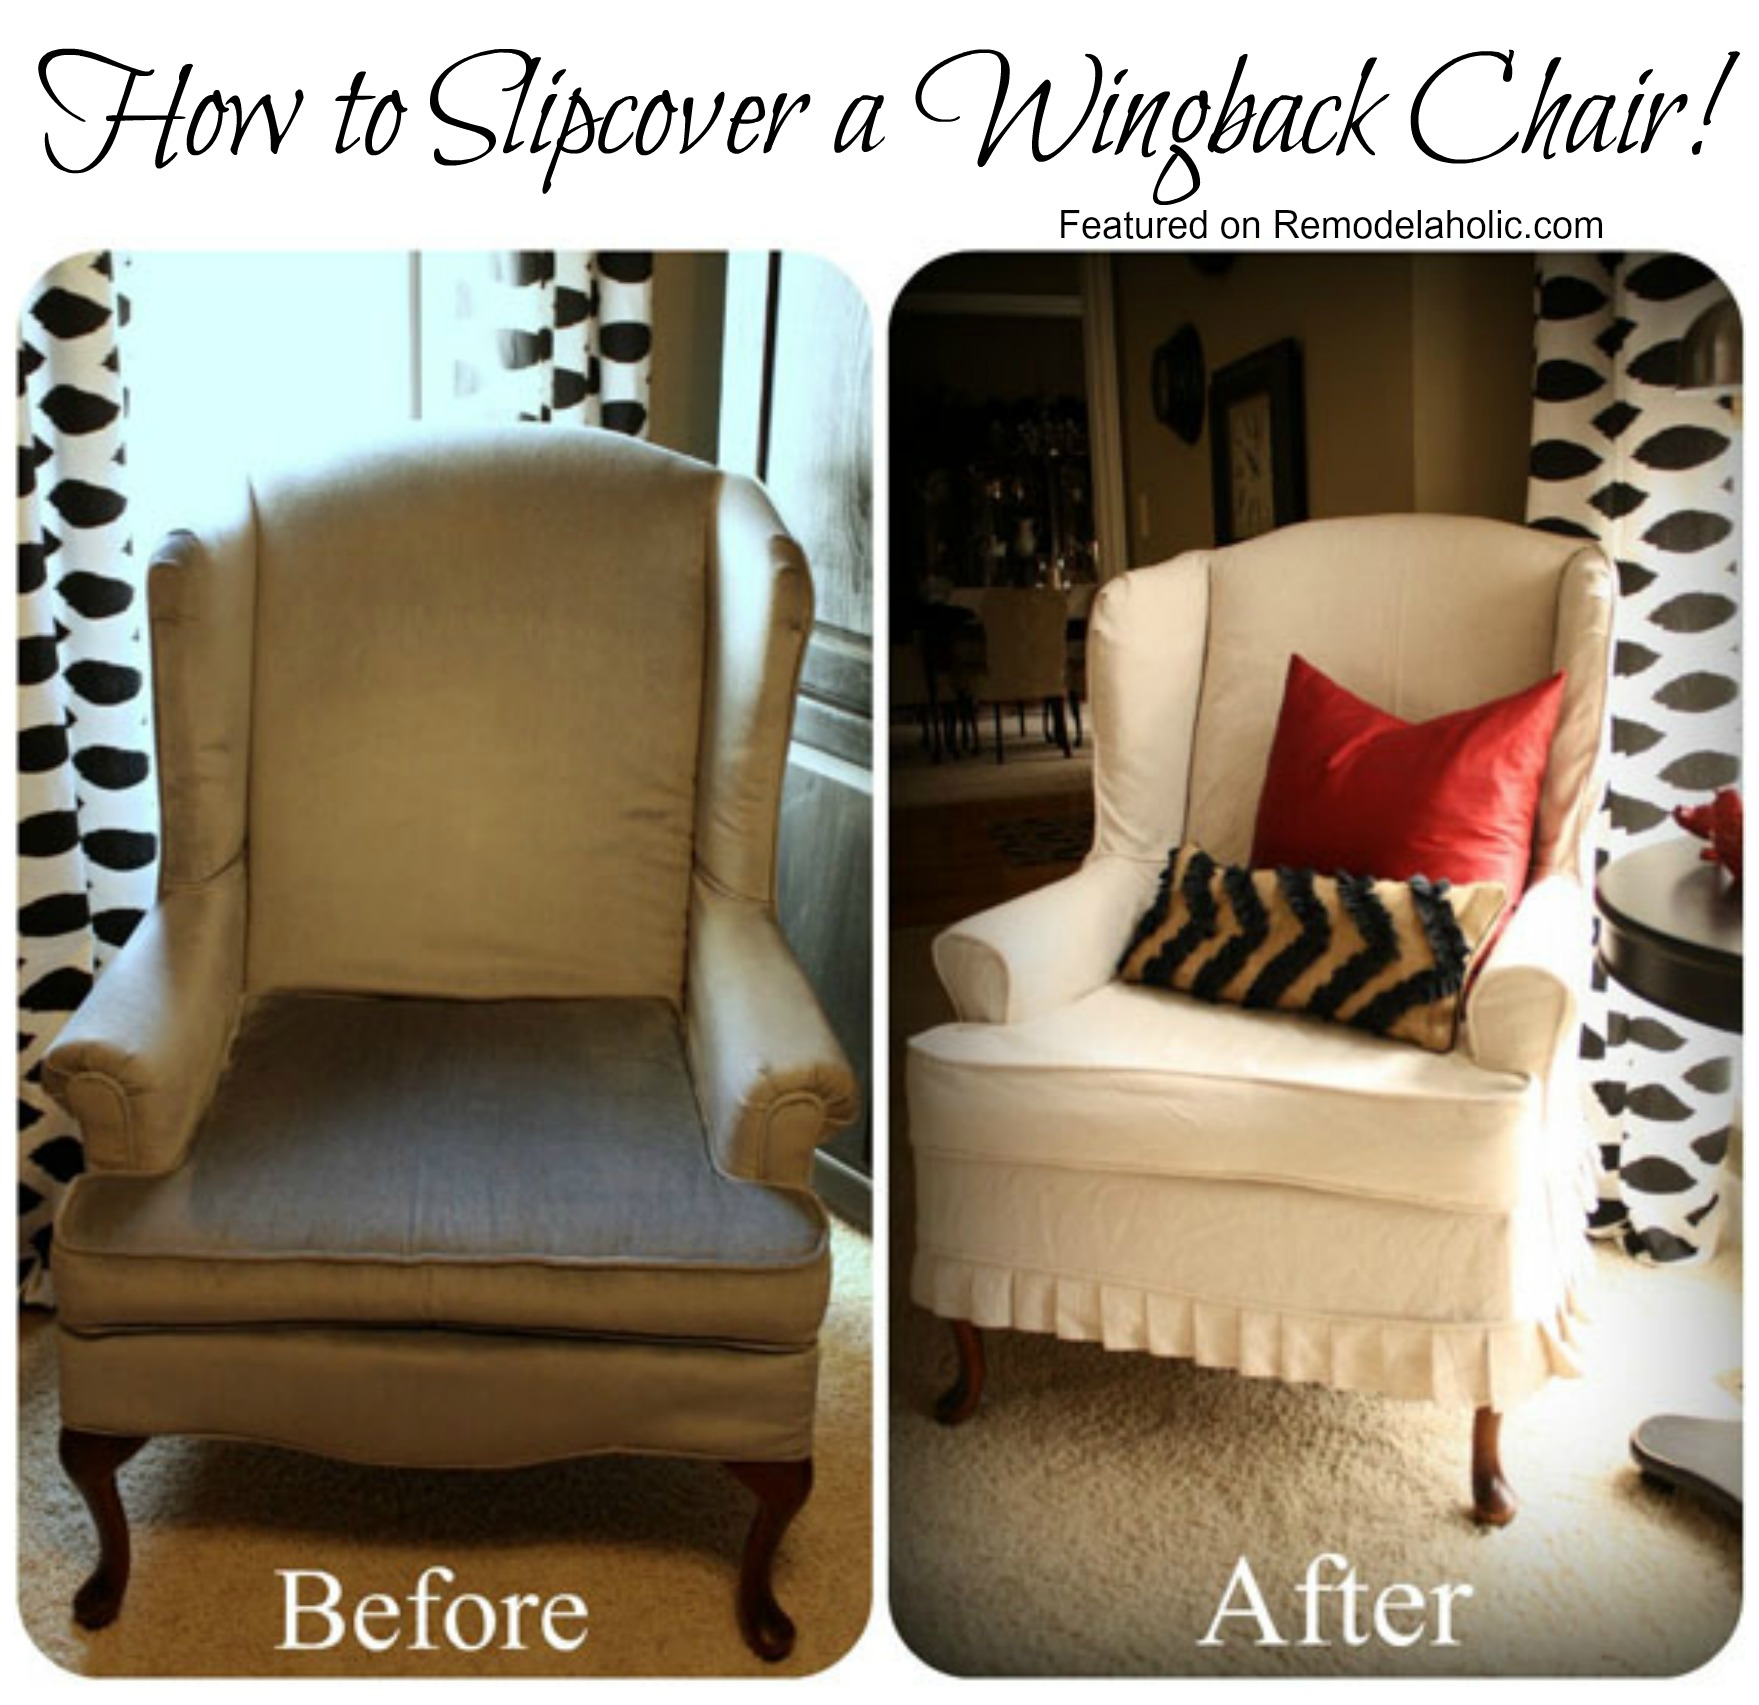 Beau HOw To Slipcover A Wingback Chair